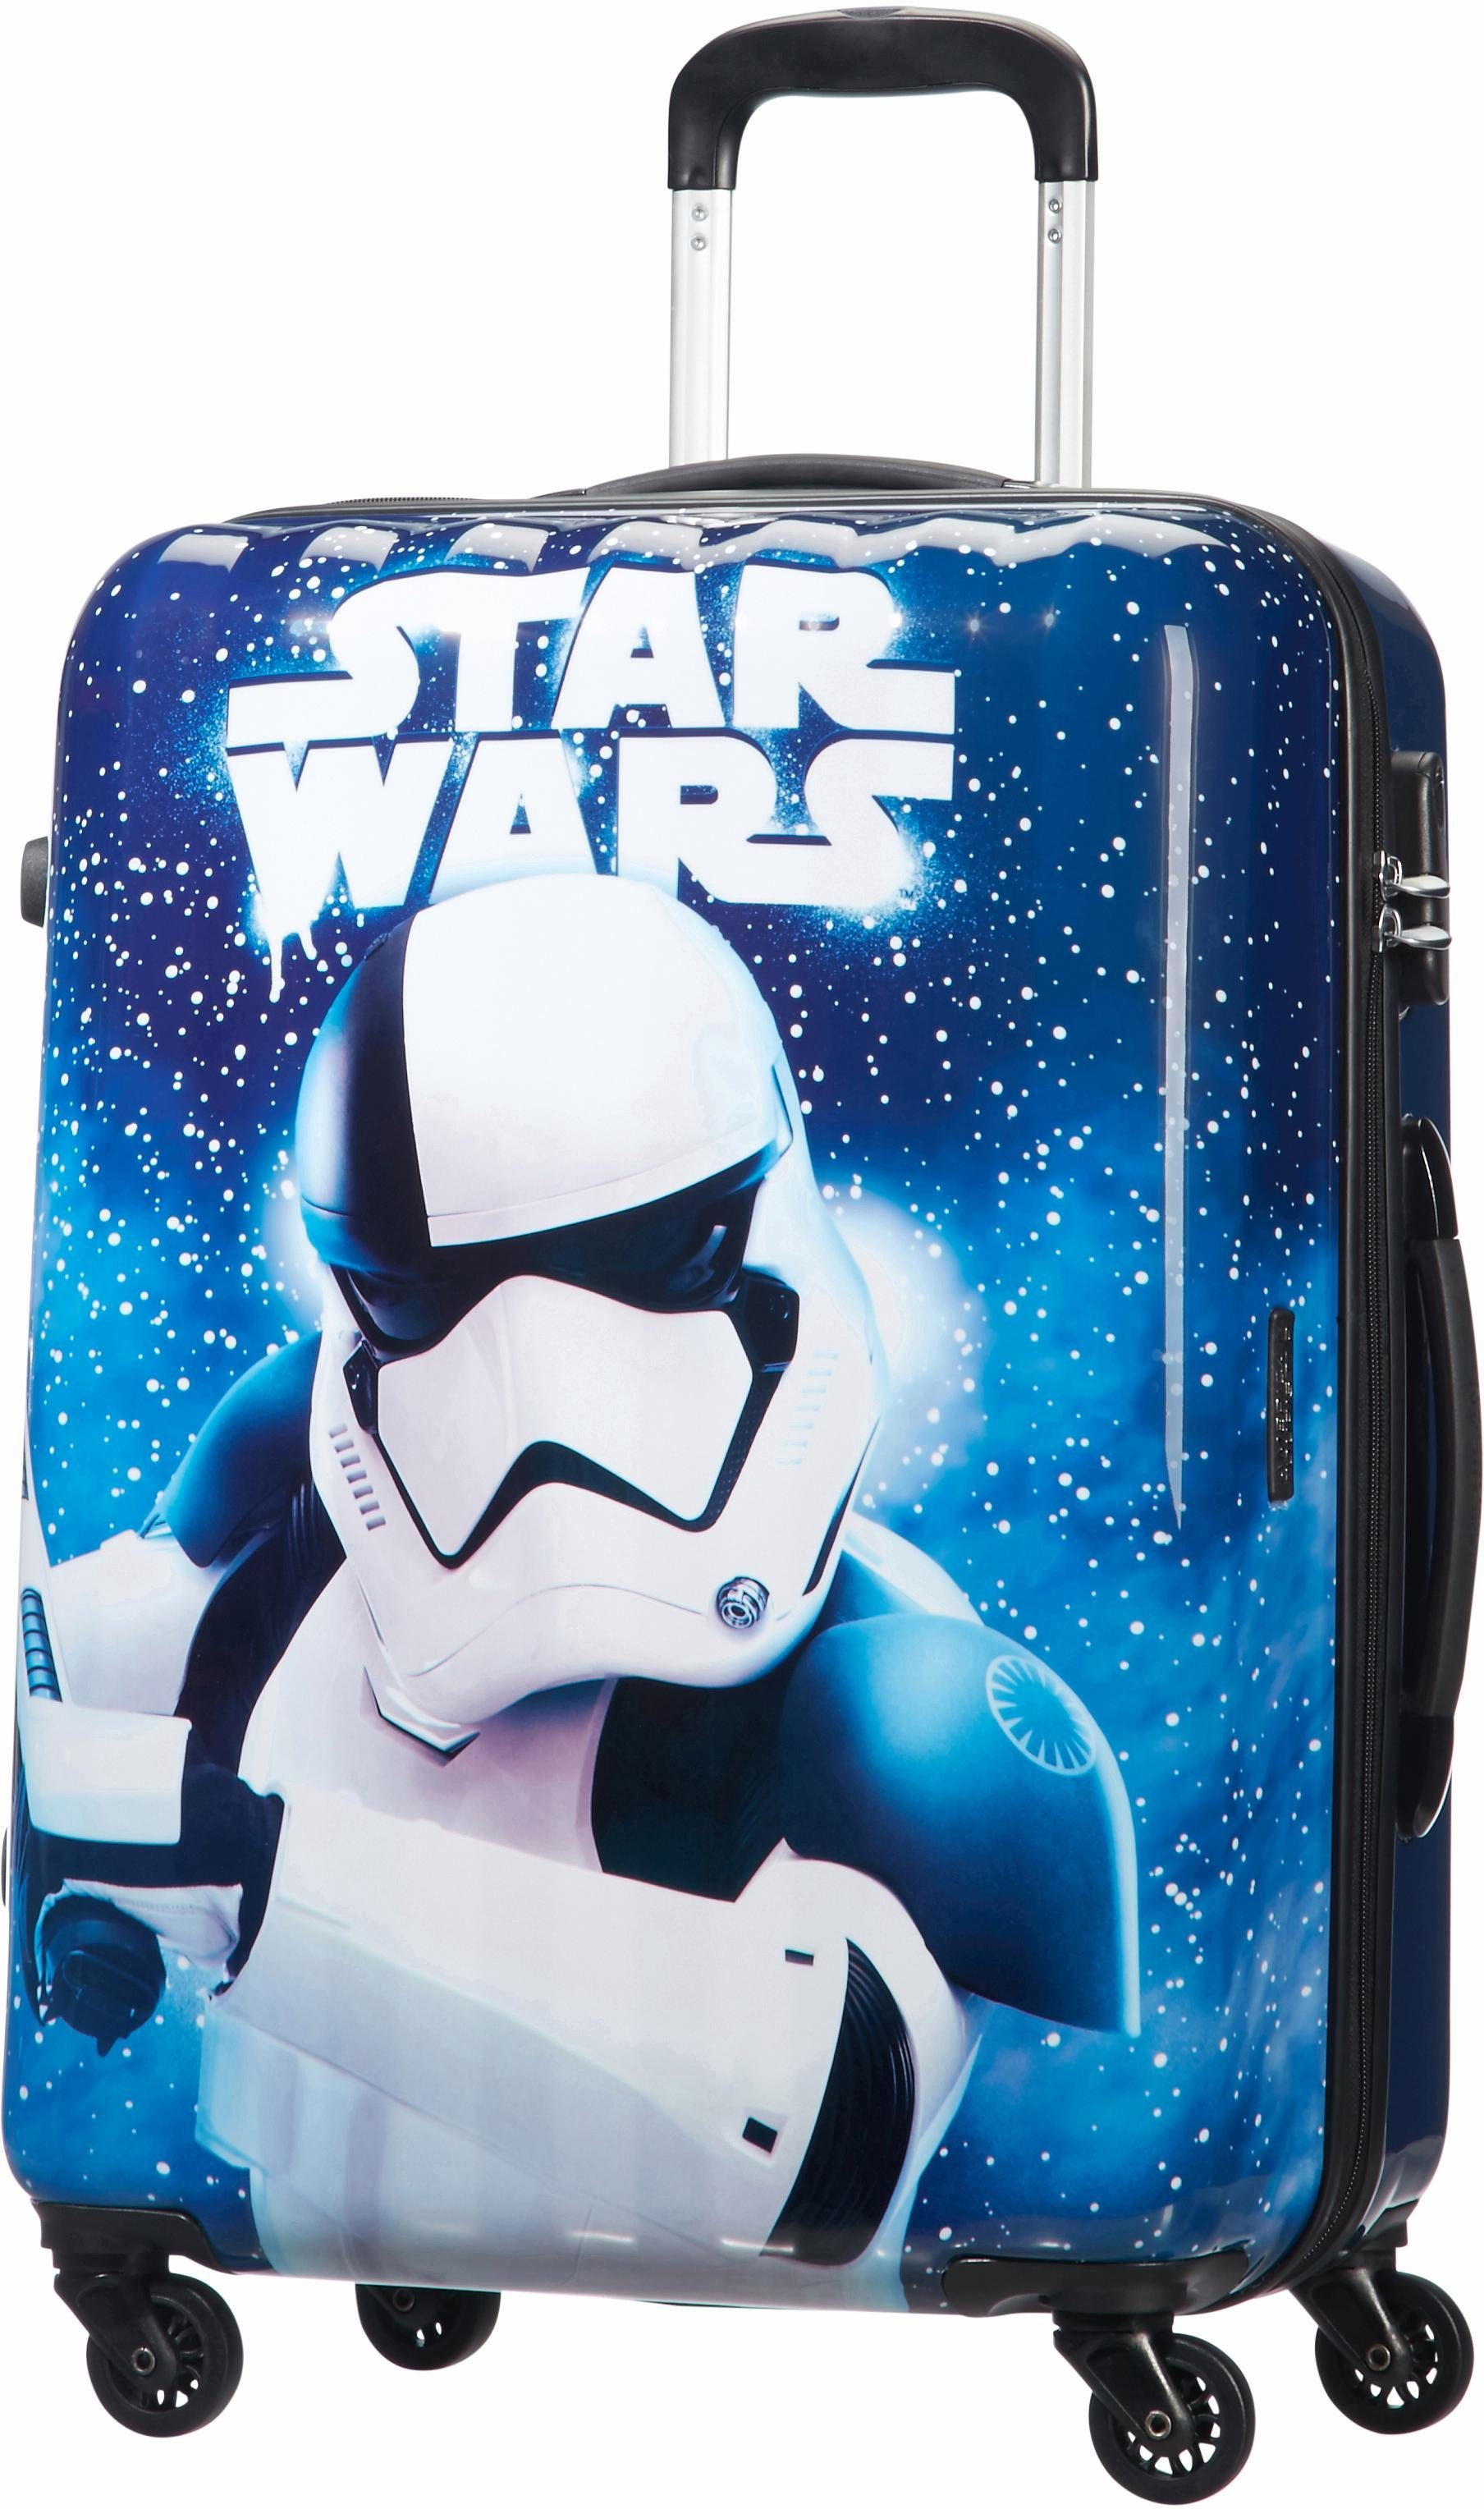 American Tourister Hartschalentrolley, »Joytwist Star Wars™ Legends, Stormtrooper EP VIII, 75 cm«